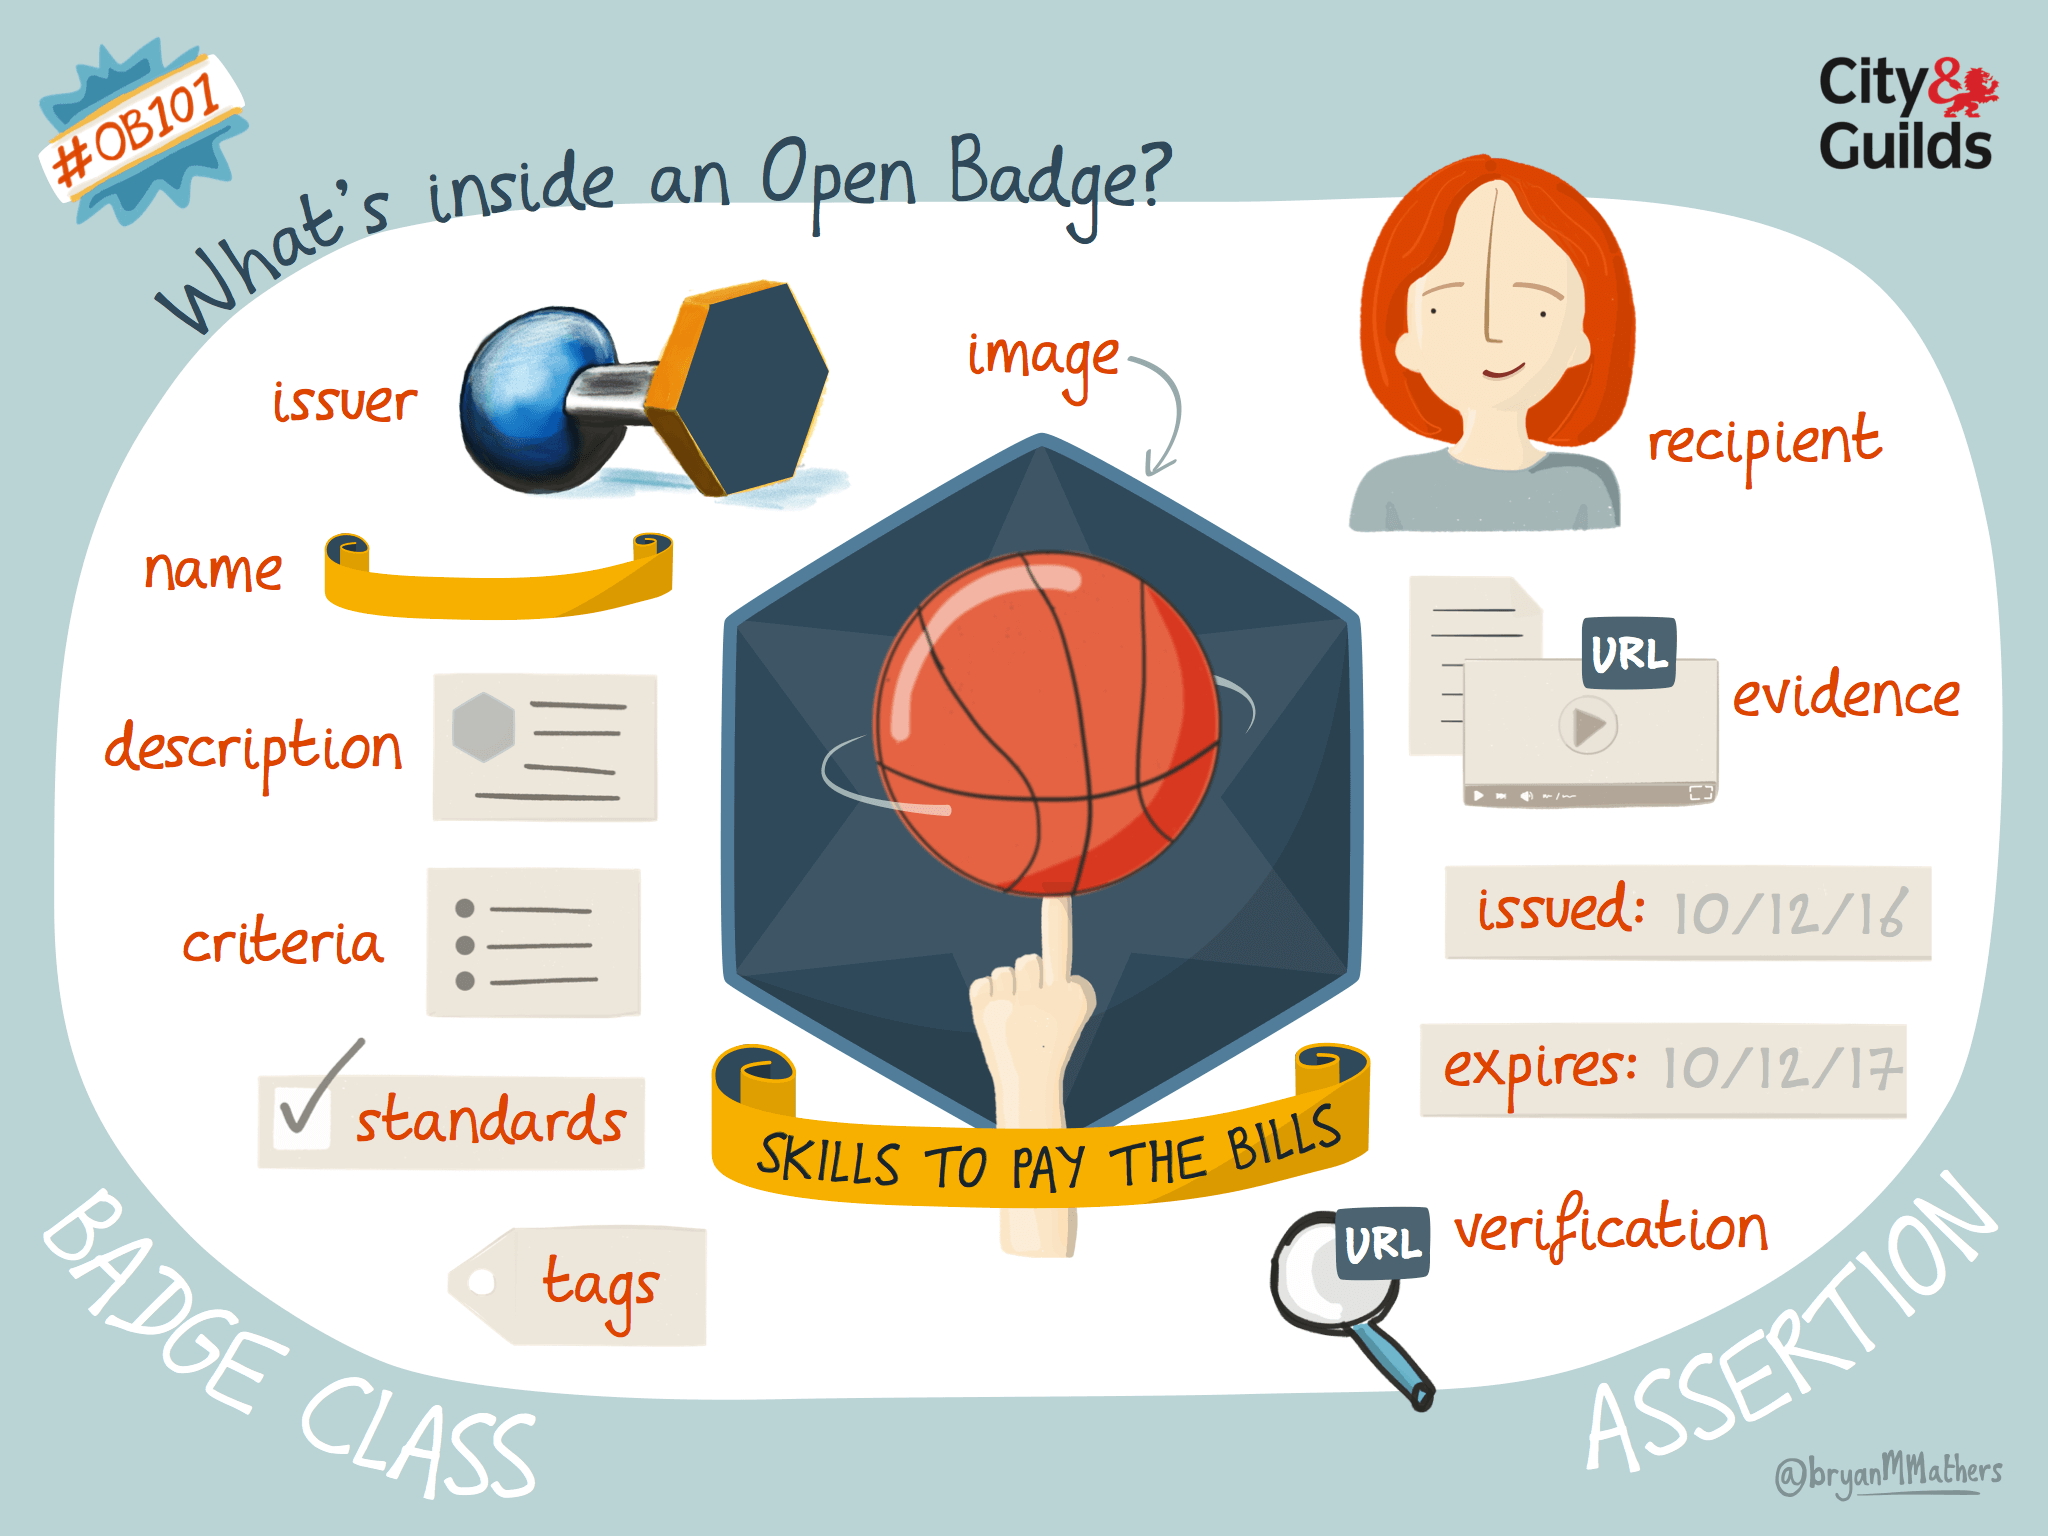 what's inside an Open Badge?